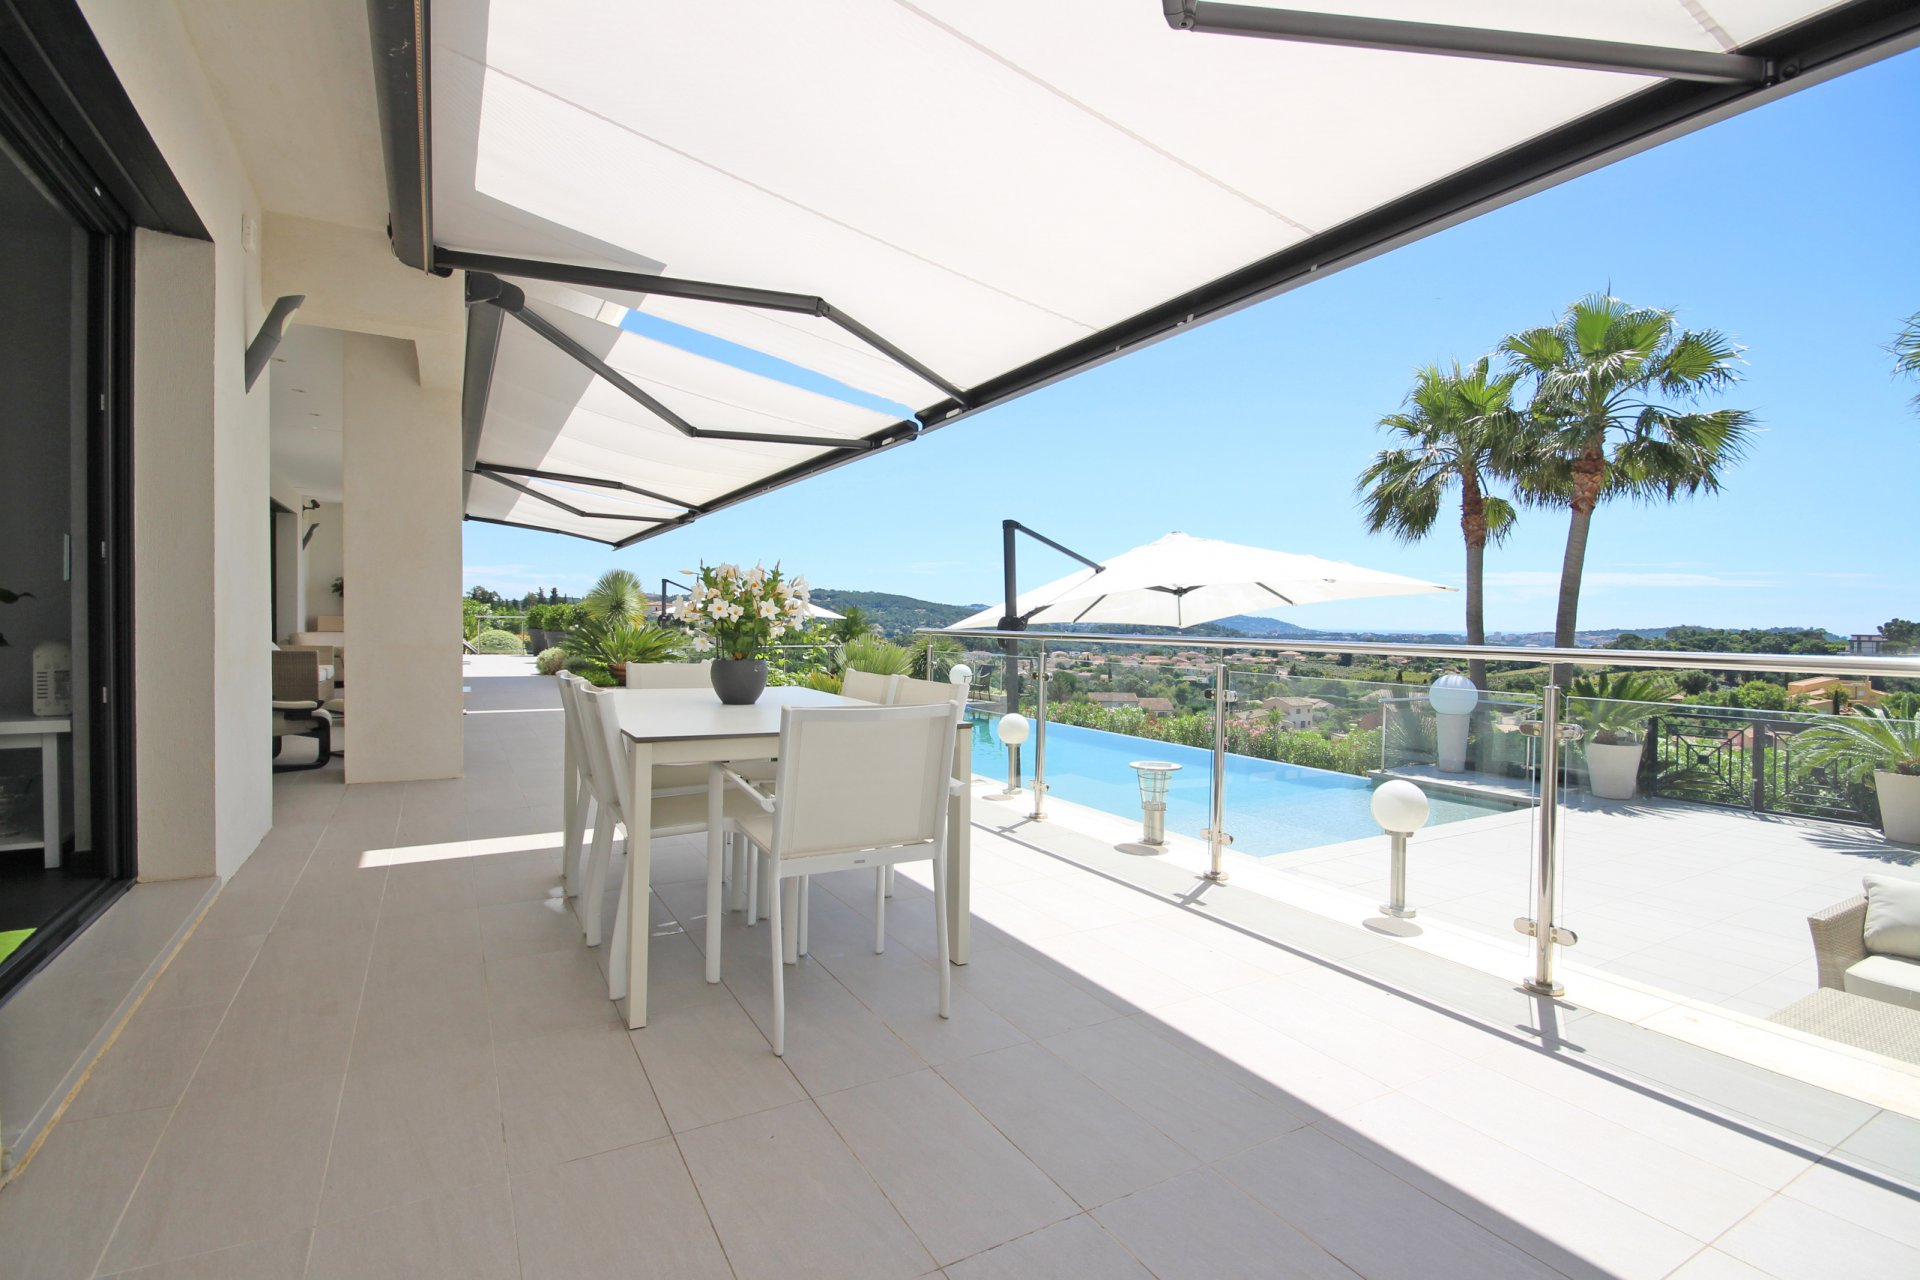 Sea view - Bright contemporary villa of 300 sqm